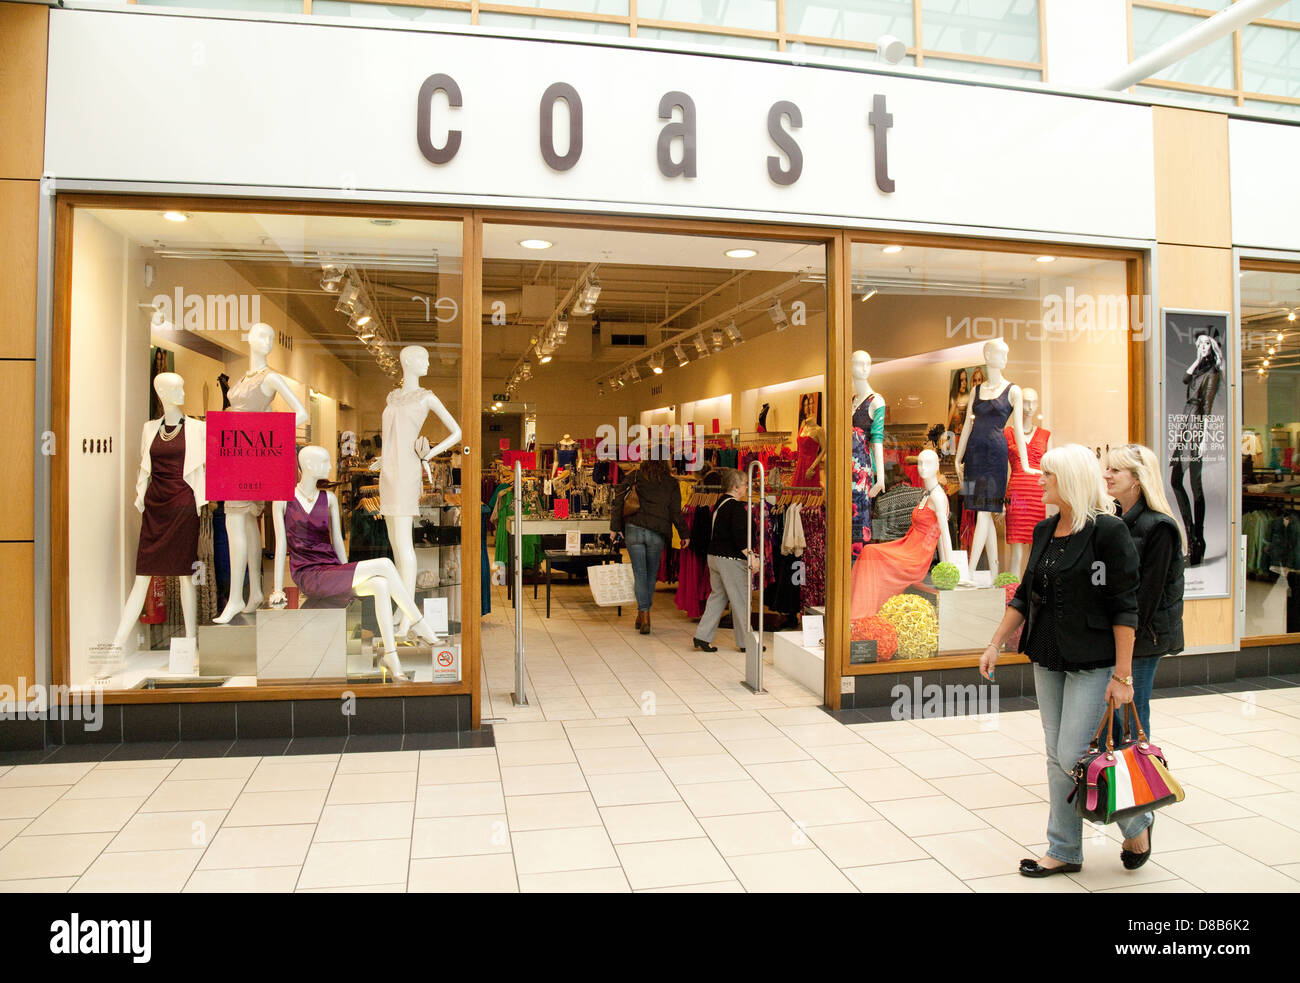 Shop Women's Designer Clothing Outlet The Coast store shop womens